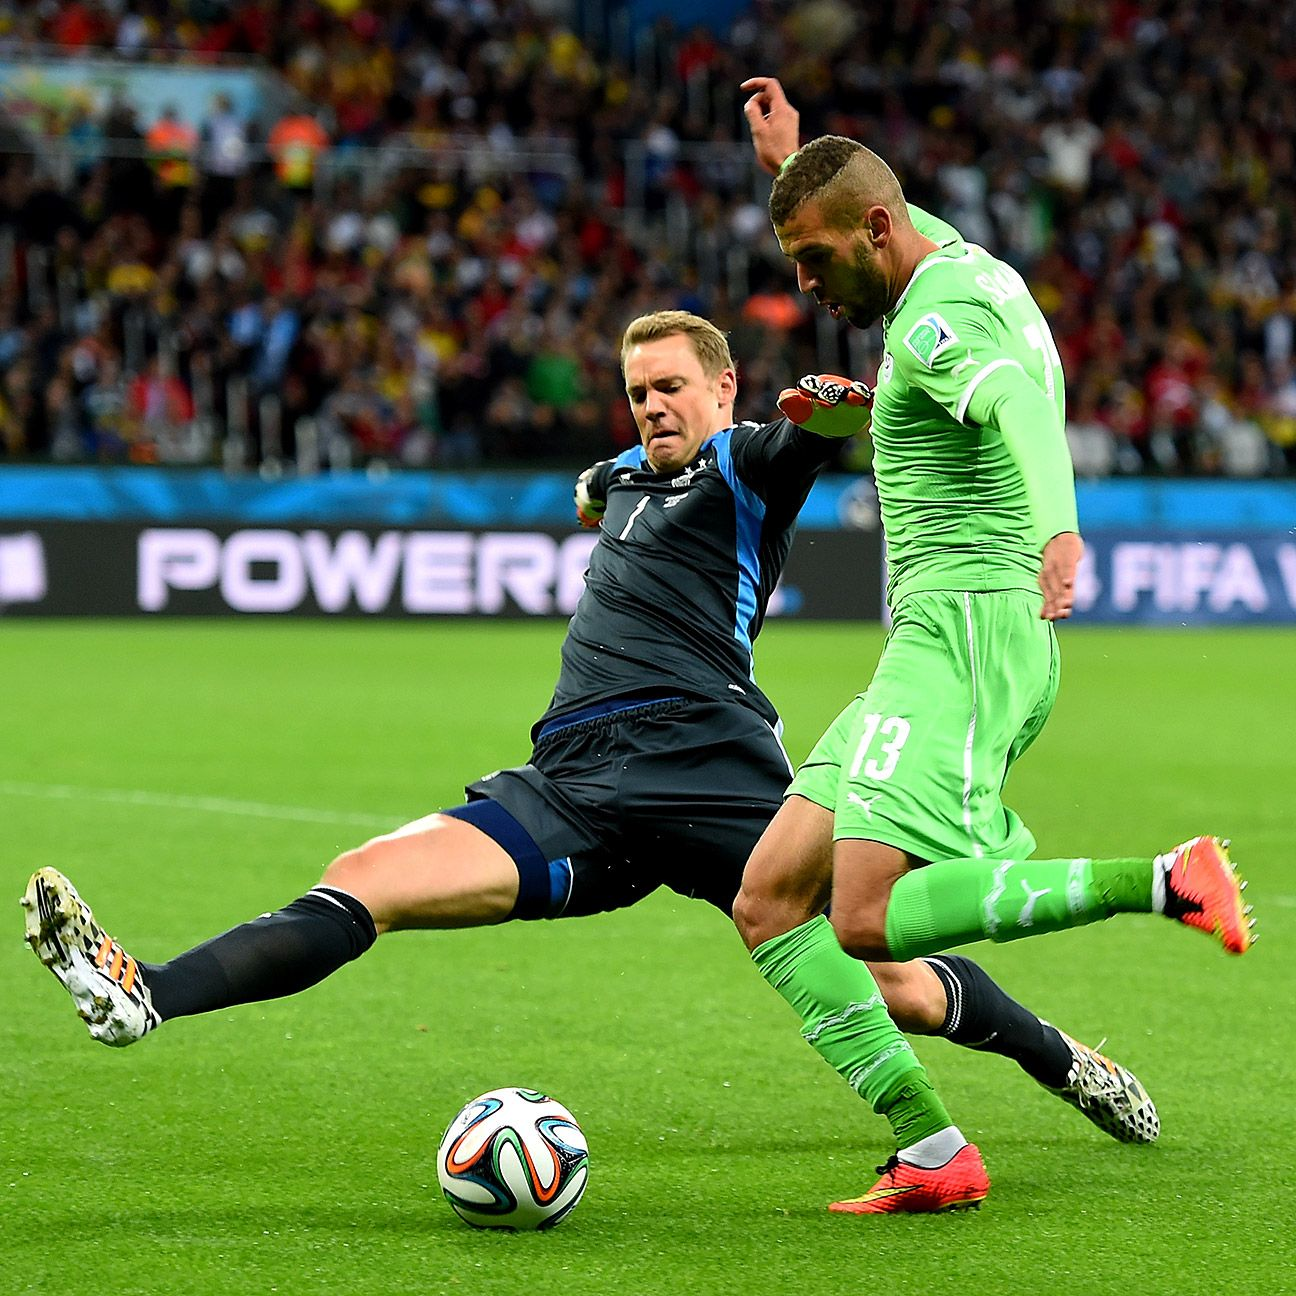 Neuer's choice to set his territory far from goal gives Germany the confidence to attack.